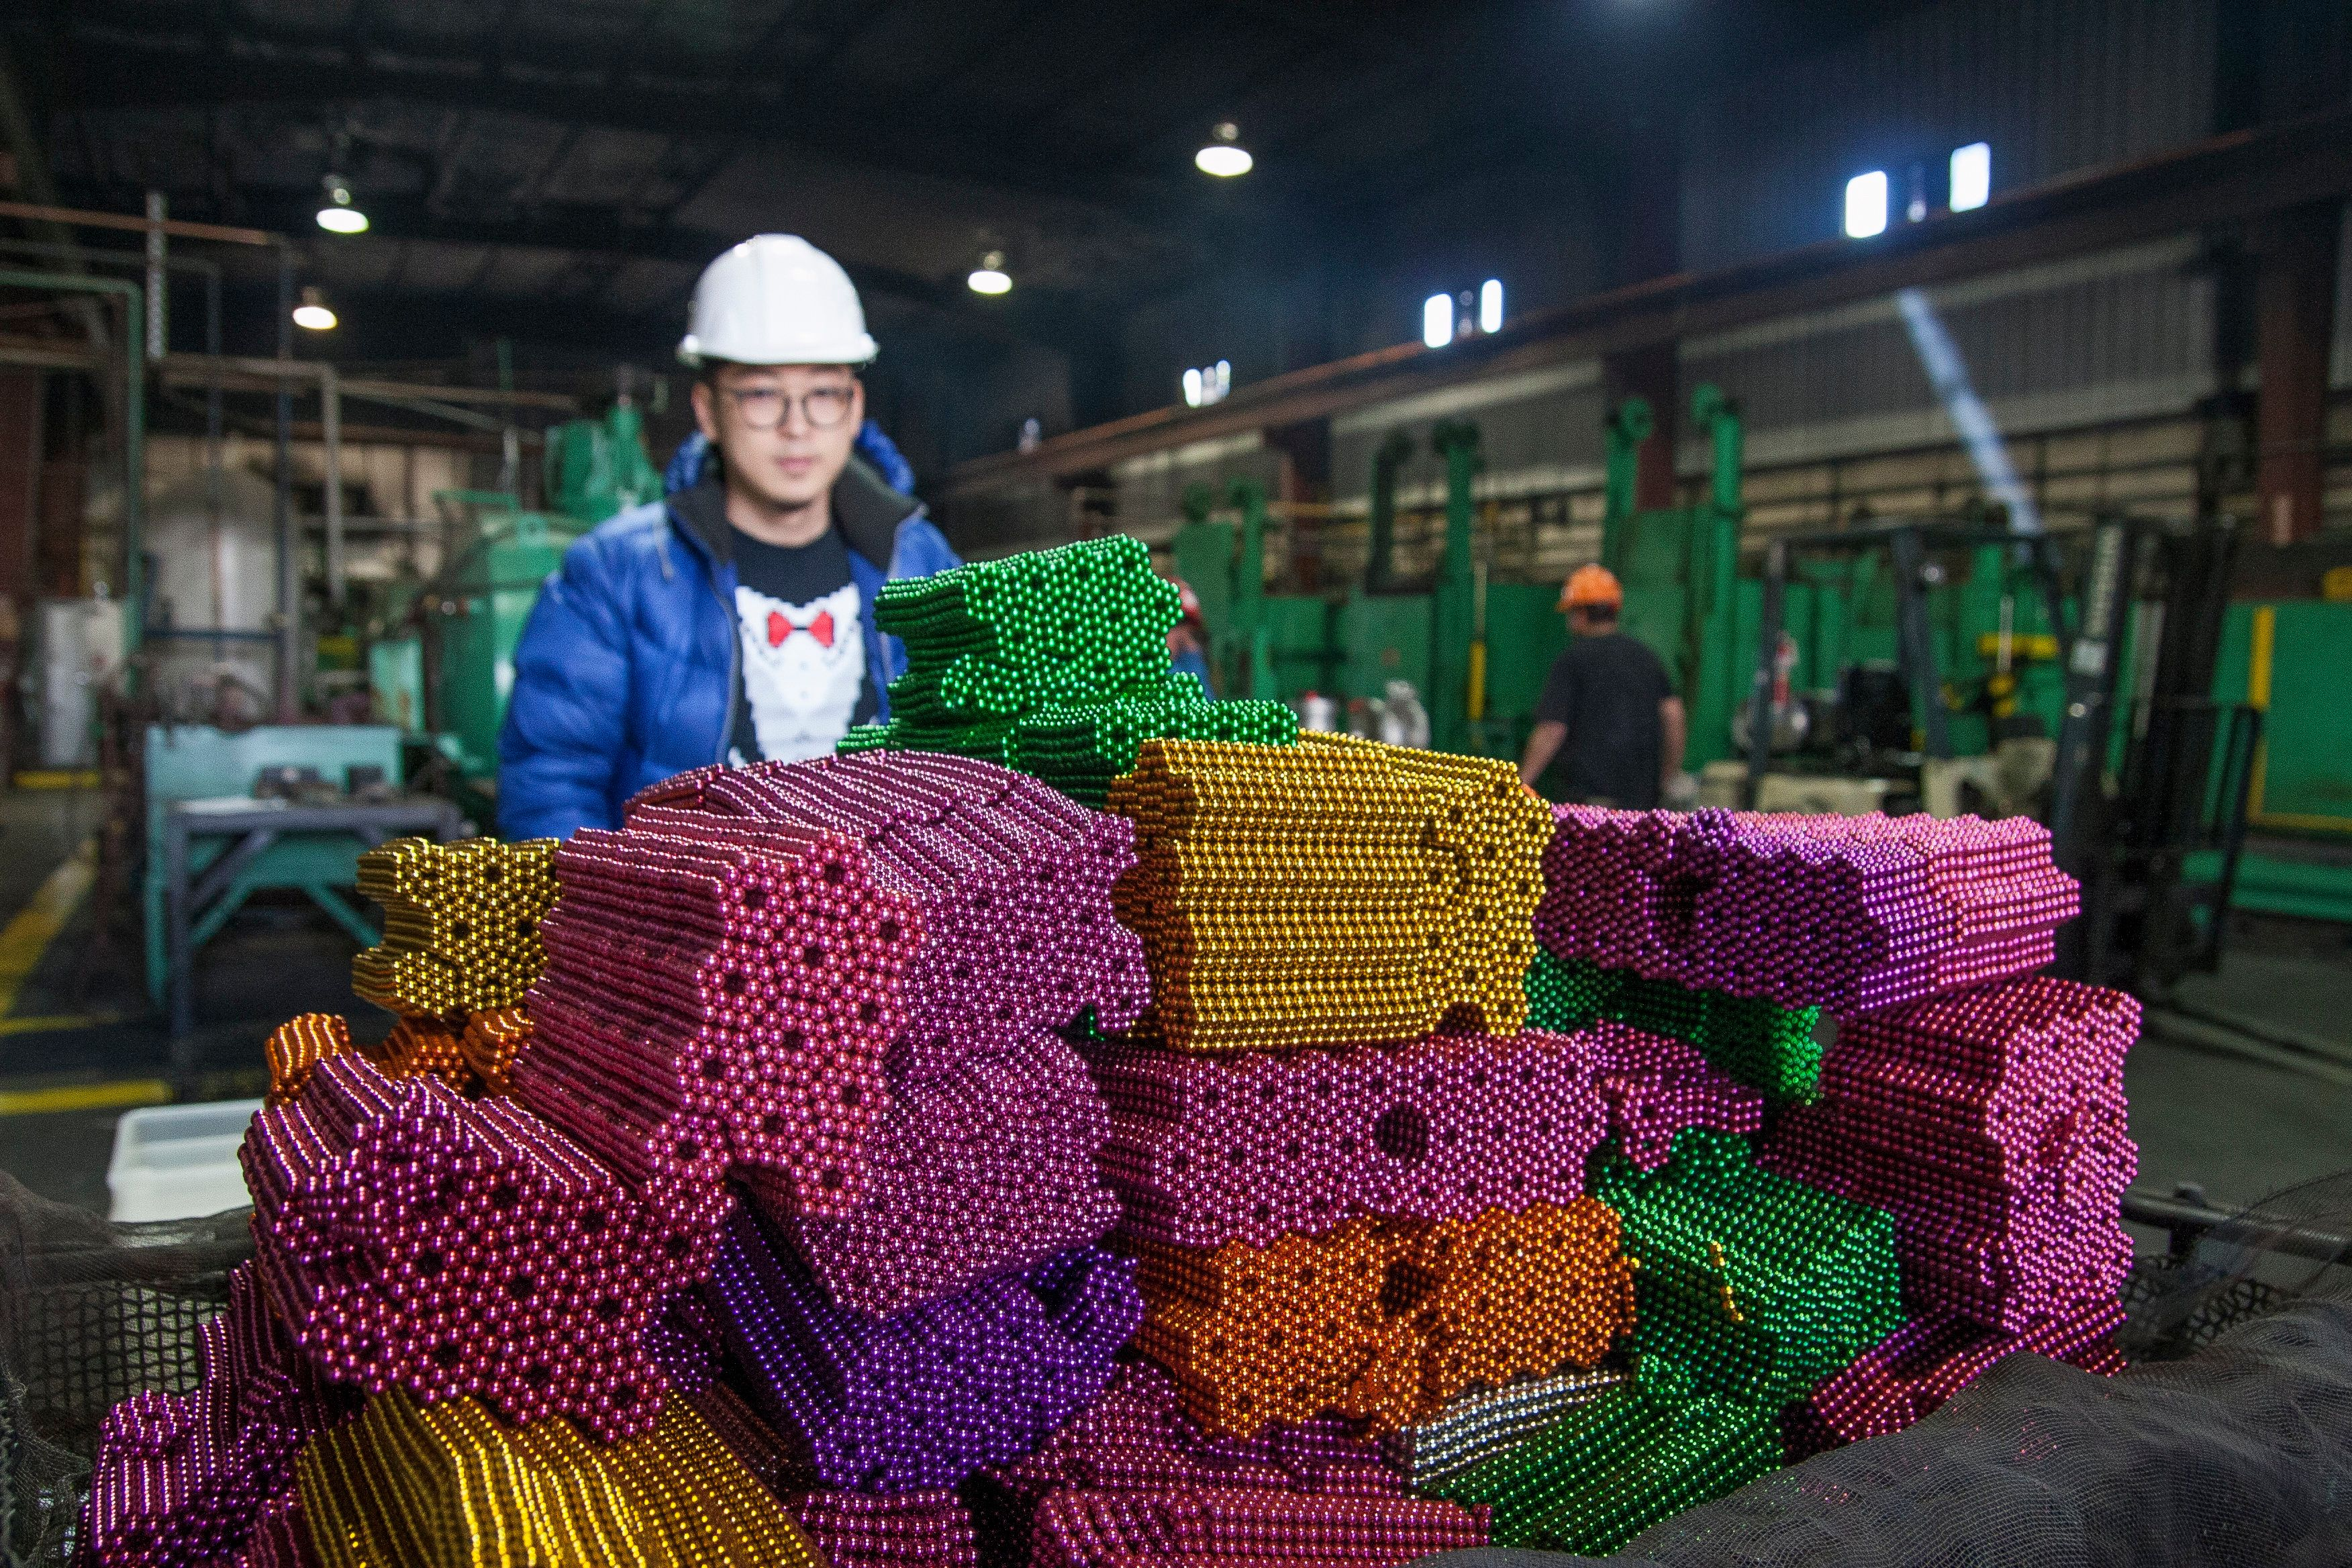 Zen Magnets founder Shihan Qu prepares high-powered magnet balls for destruction at the Metal Treating & Research Co. in